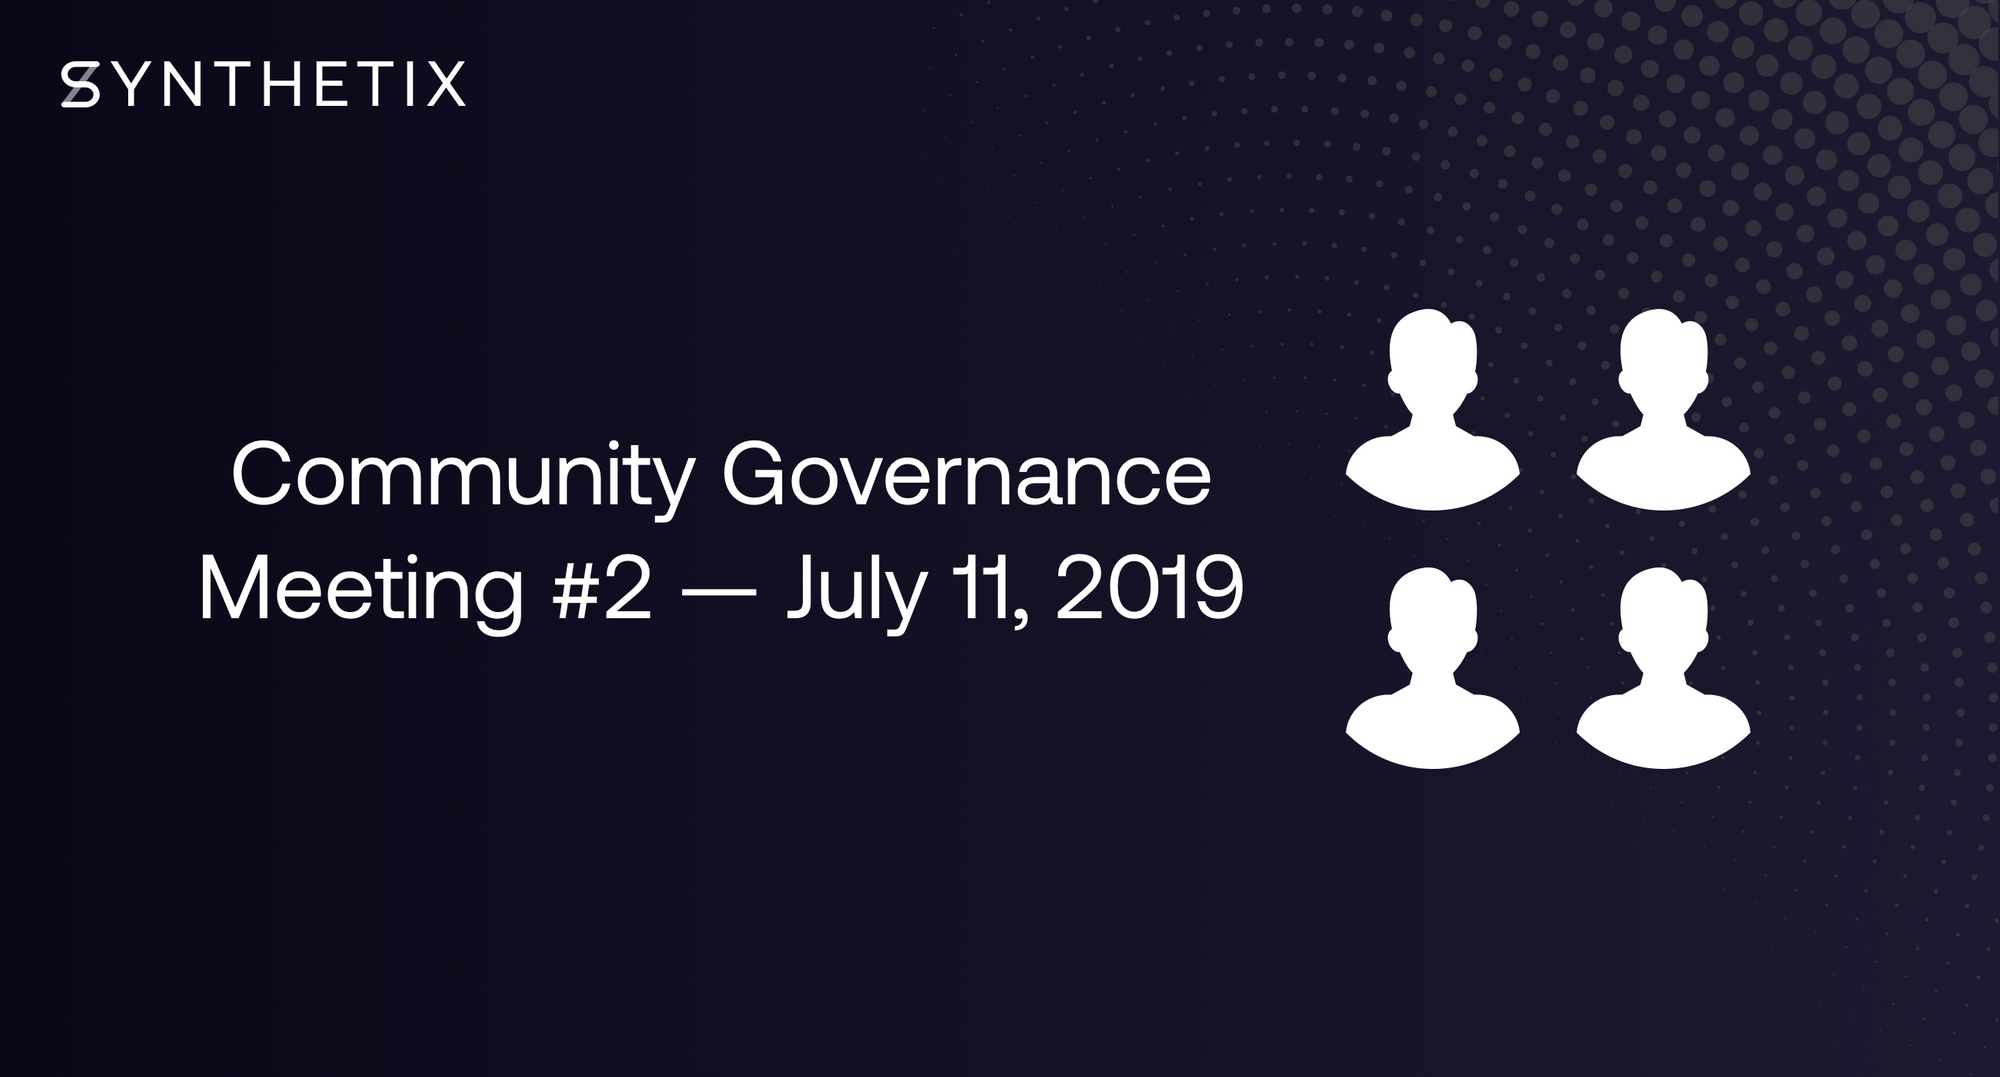 The next community governance call is scheduled for Thursday, July 11